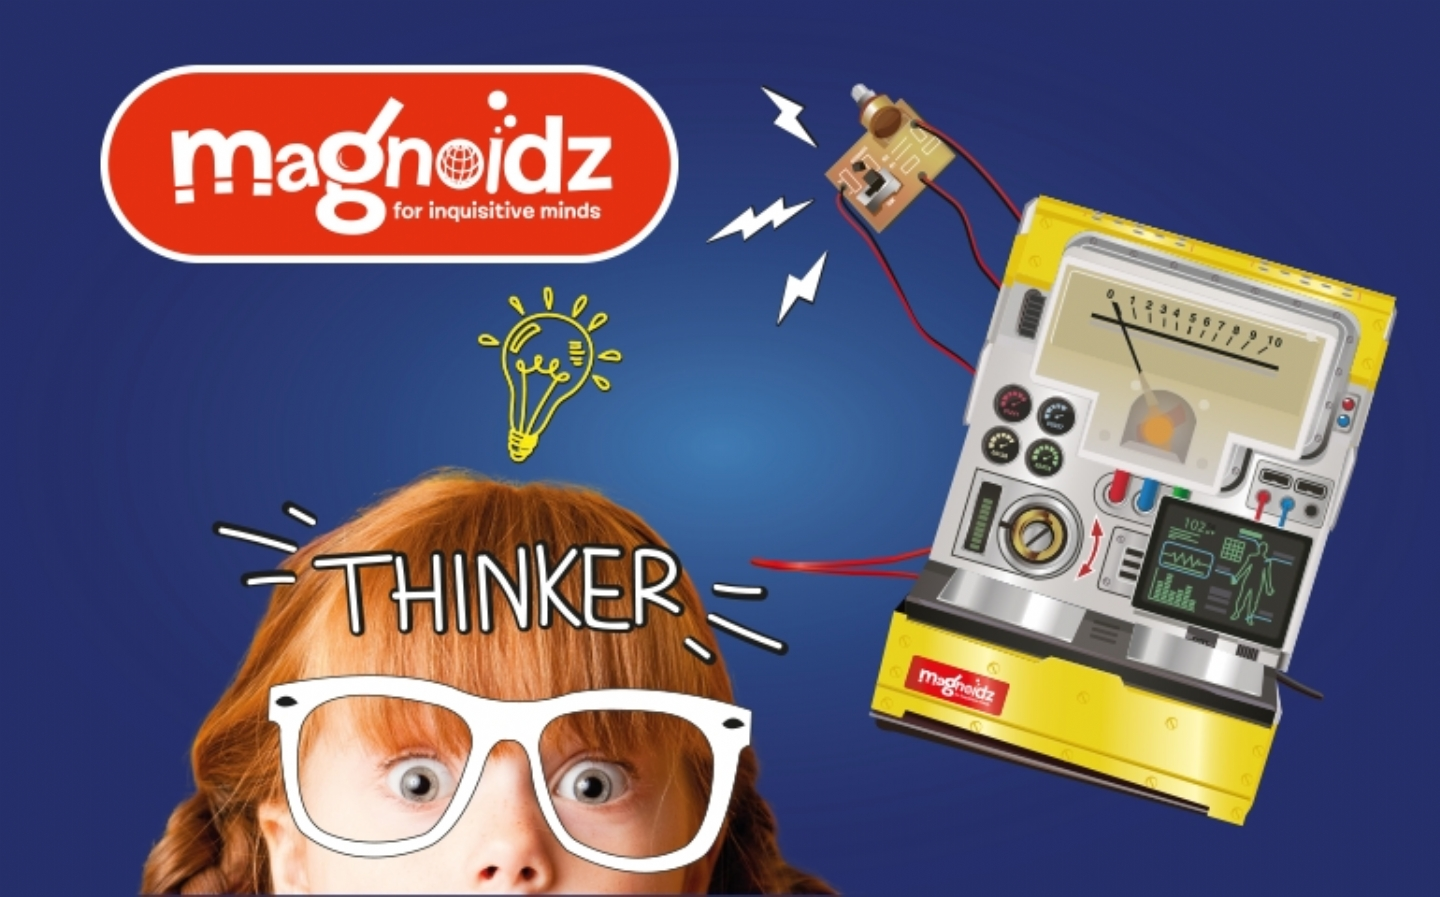 Magnoidz expand range with new toys and gadgets